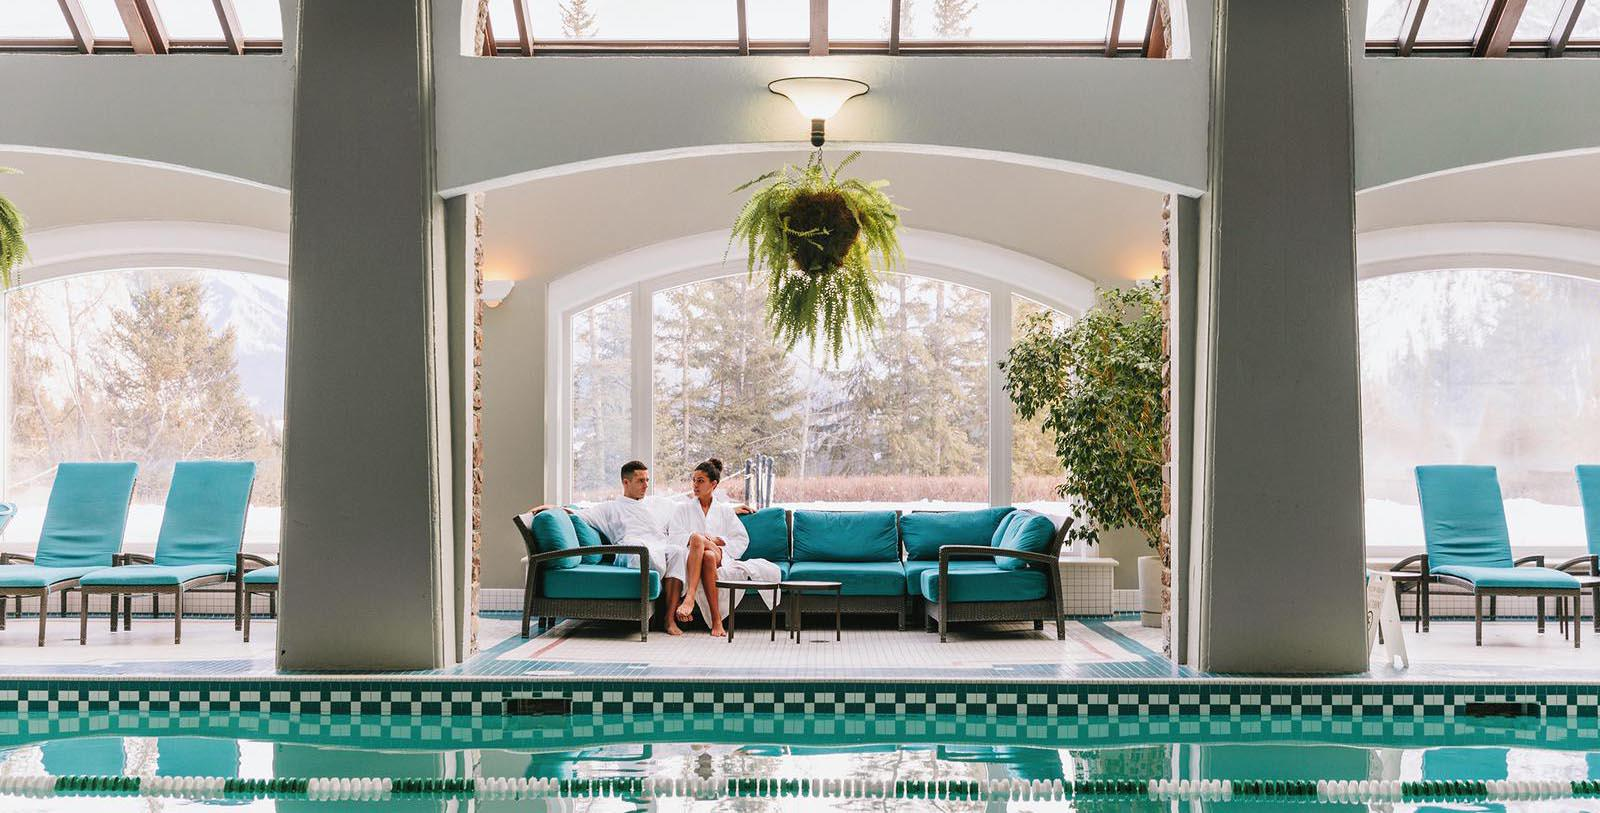 Image of spa pool area Fairmont Banff Springs, 1888, Member of Historic Hotels Worldwide, in Banff, Alberta, Canada, Explore